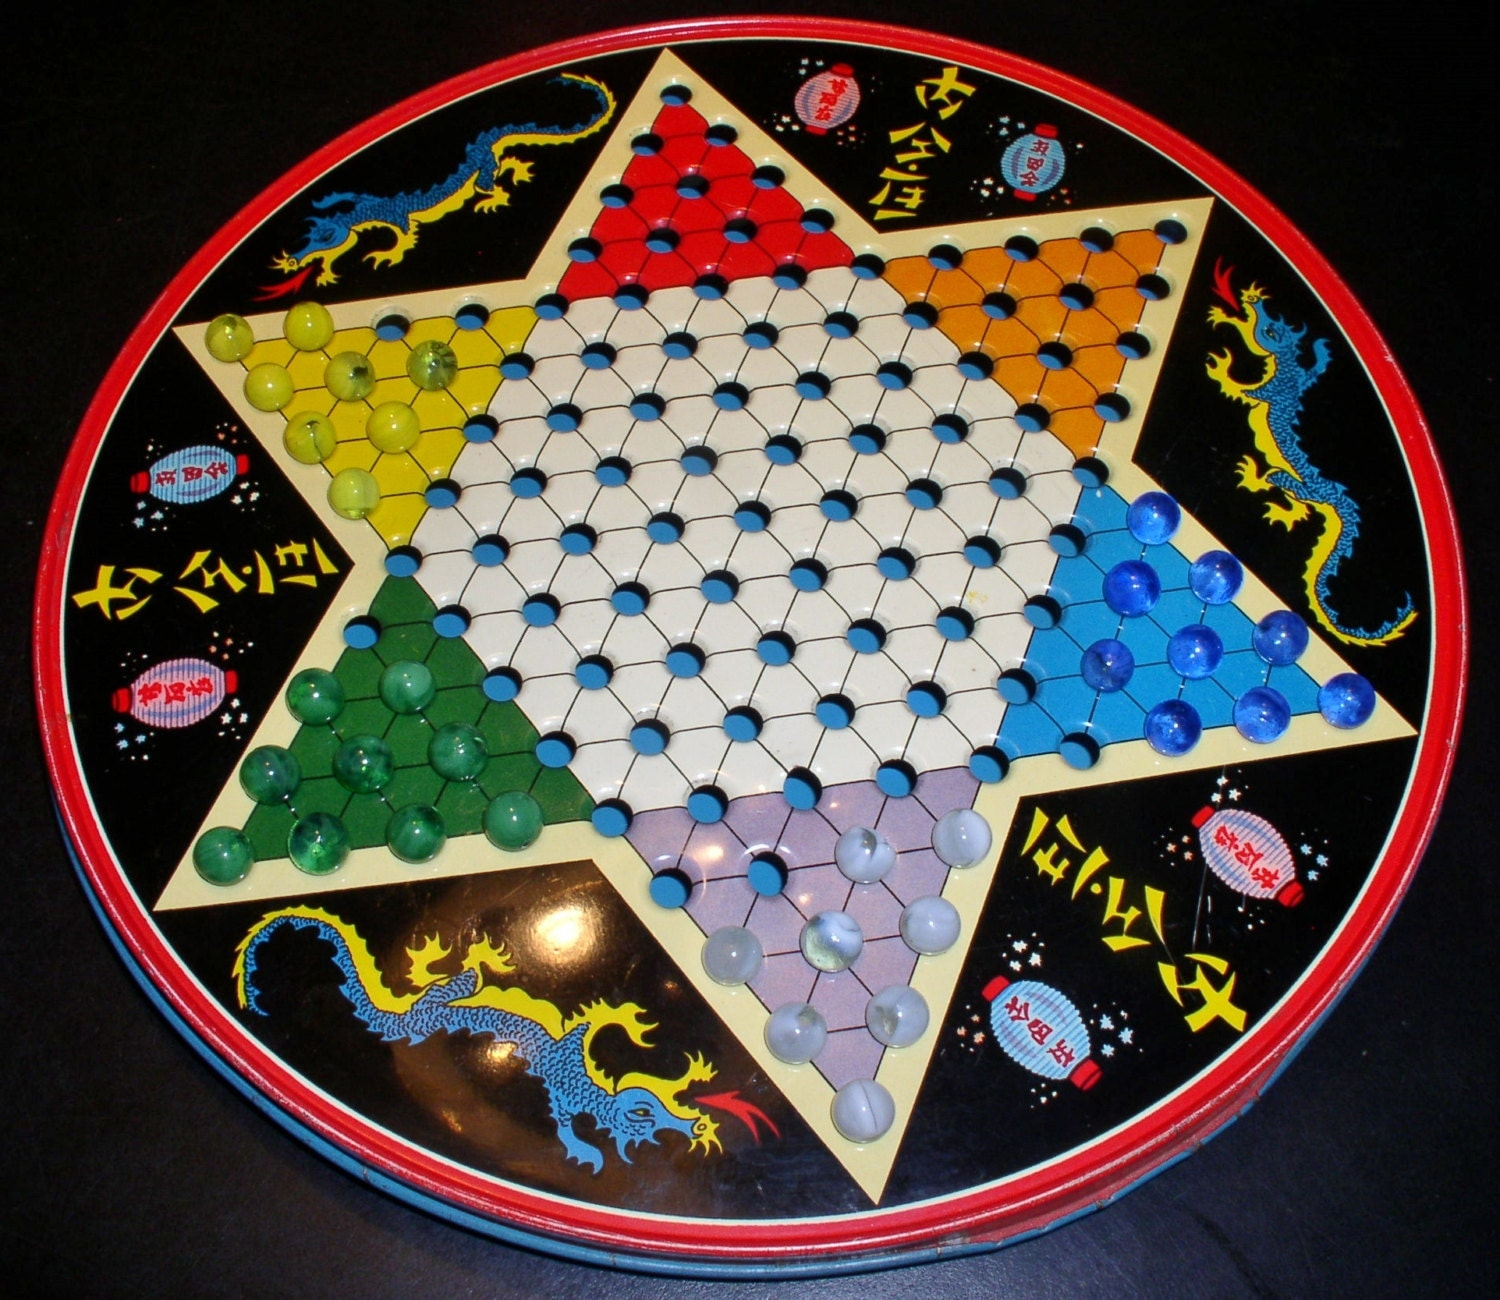 1950s Chinese Checkers Amp Checkerboard Tin By Ohio Art Co